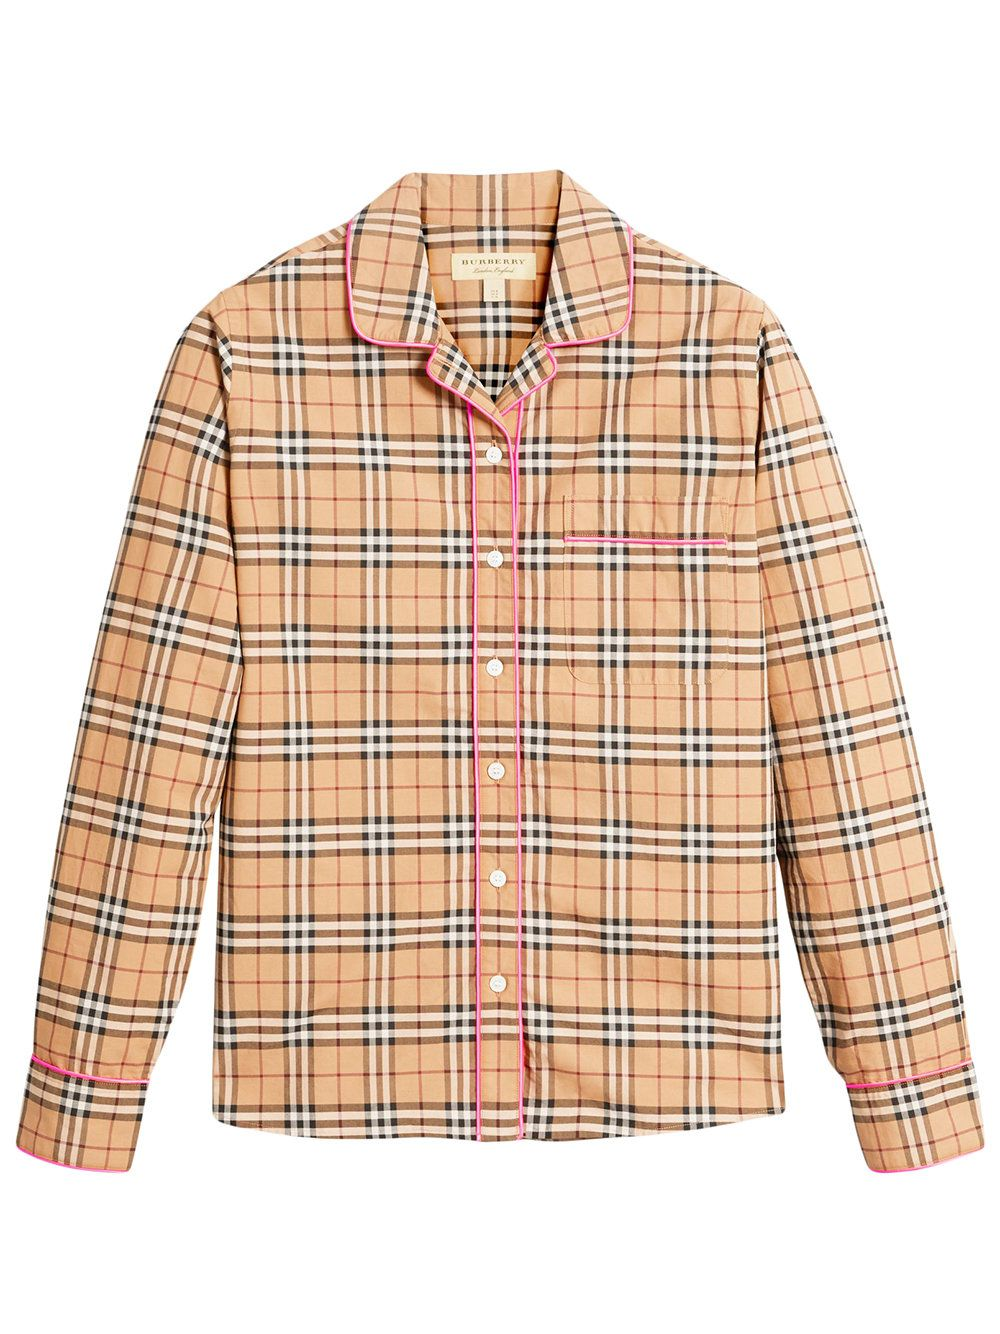 Burberry women 39 s brown contrast piping vintage check for Ladies brown check shirt